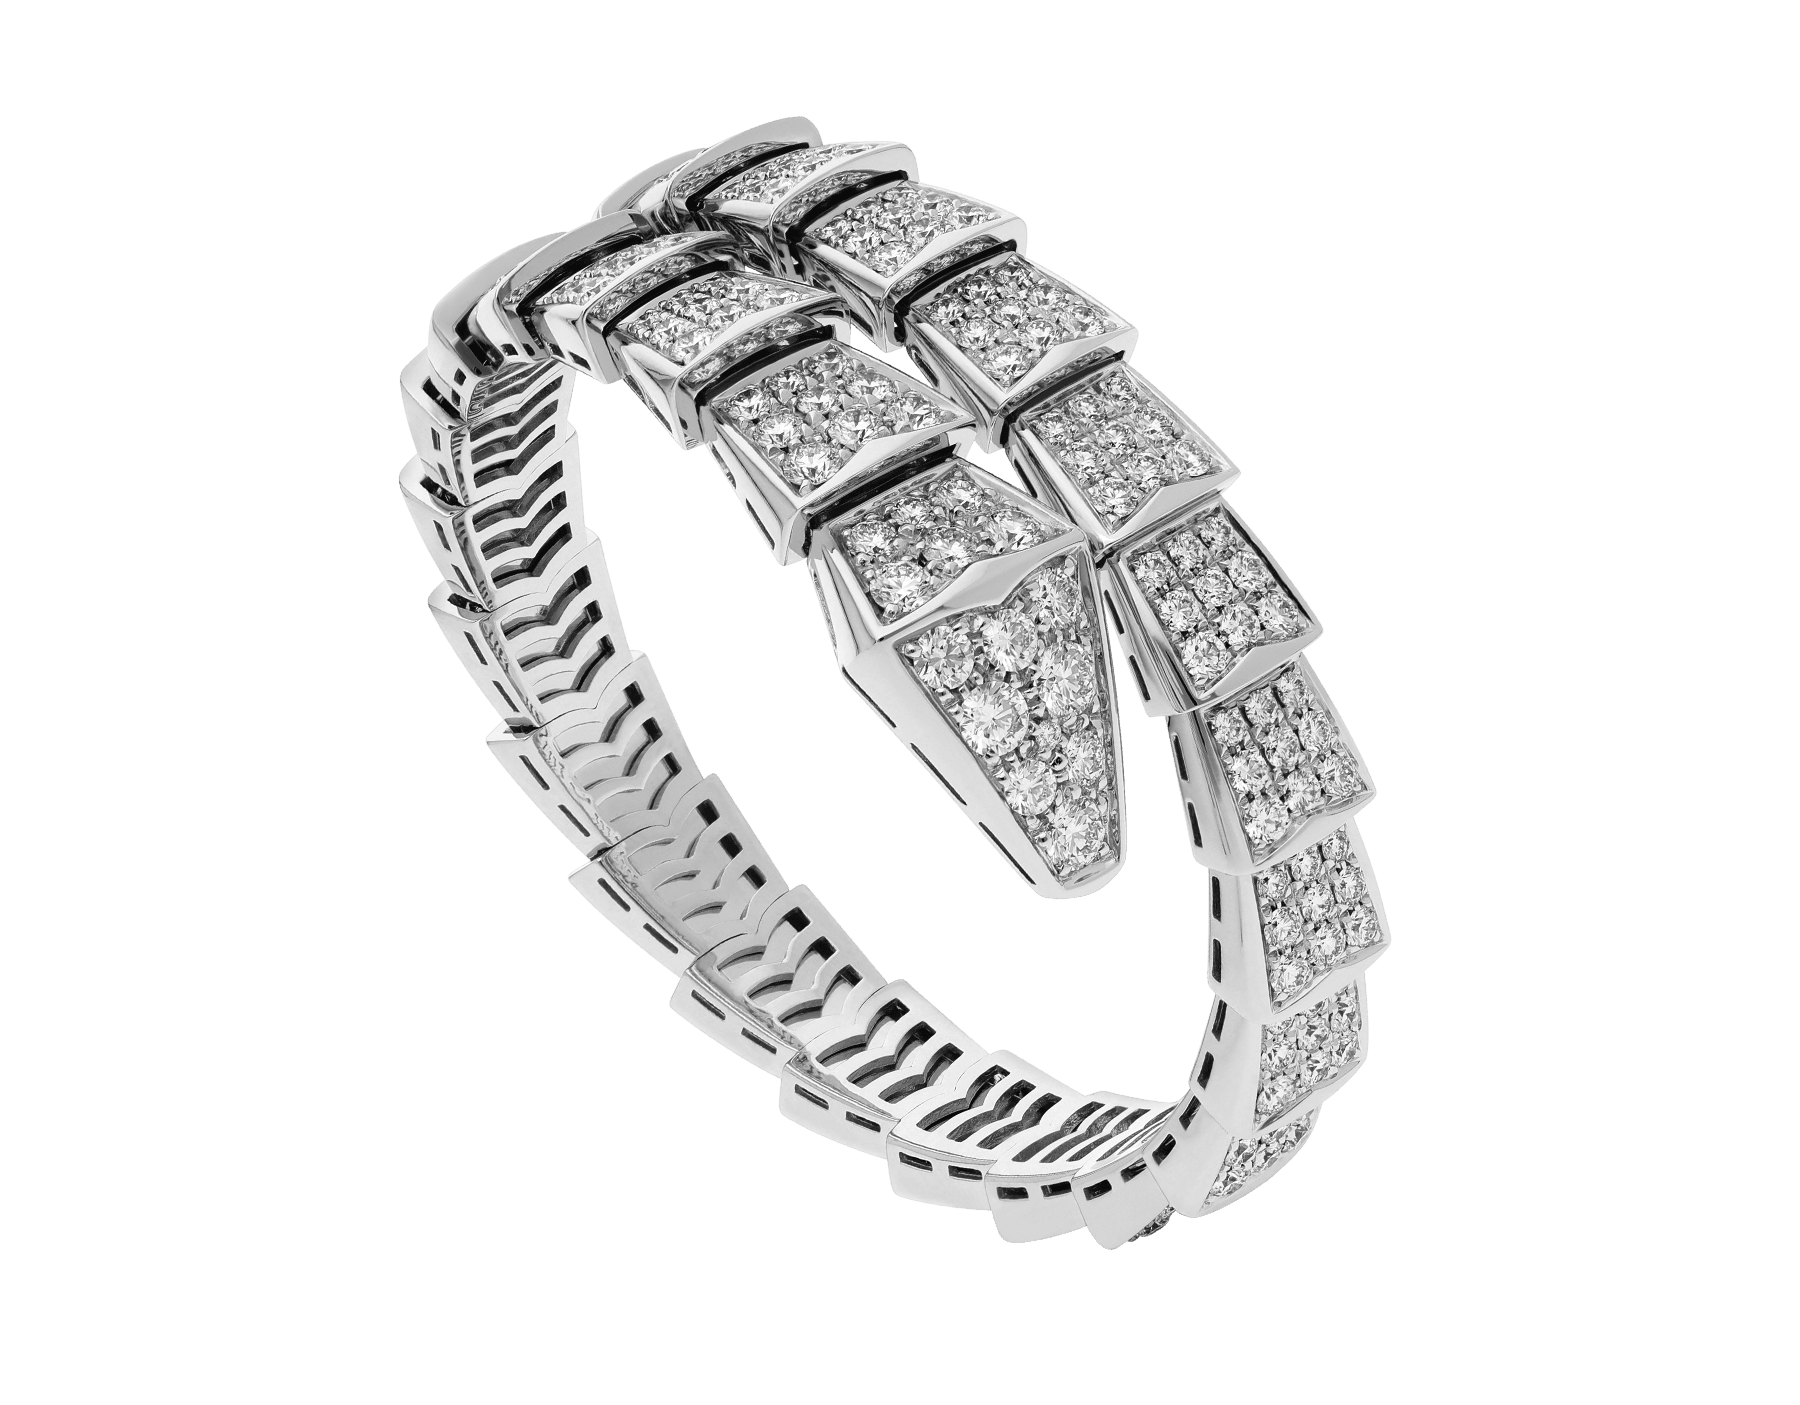 Serpenti one-coil bracelet in 18 kt white gold, set with full pavé diamonds. BR855231 image 1